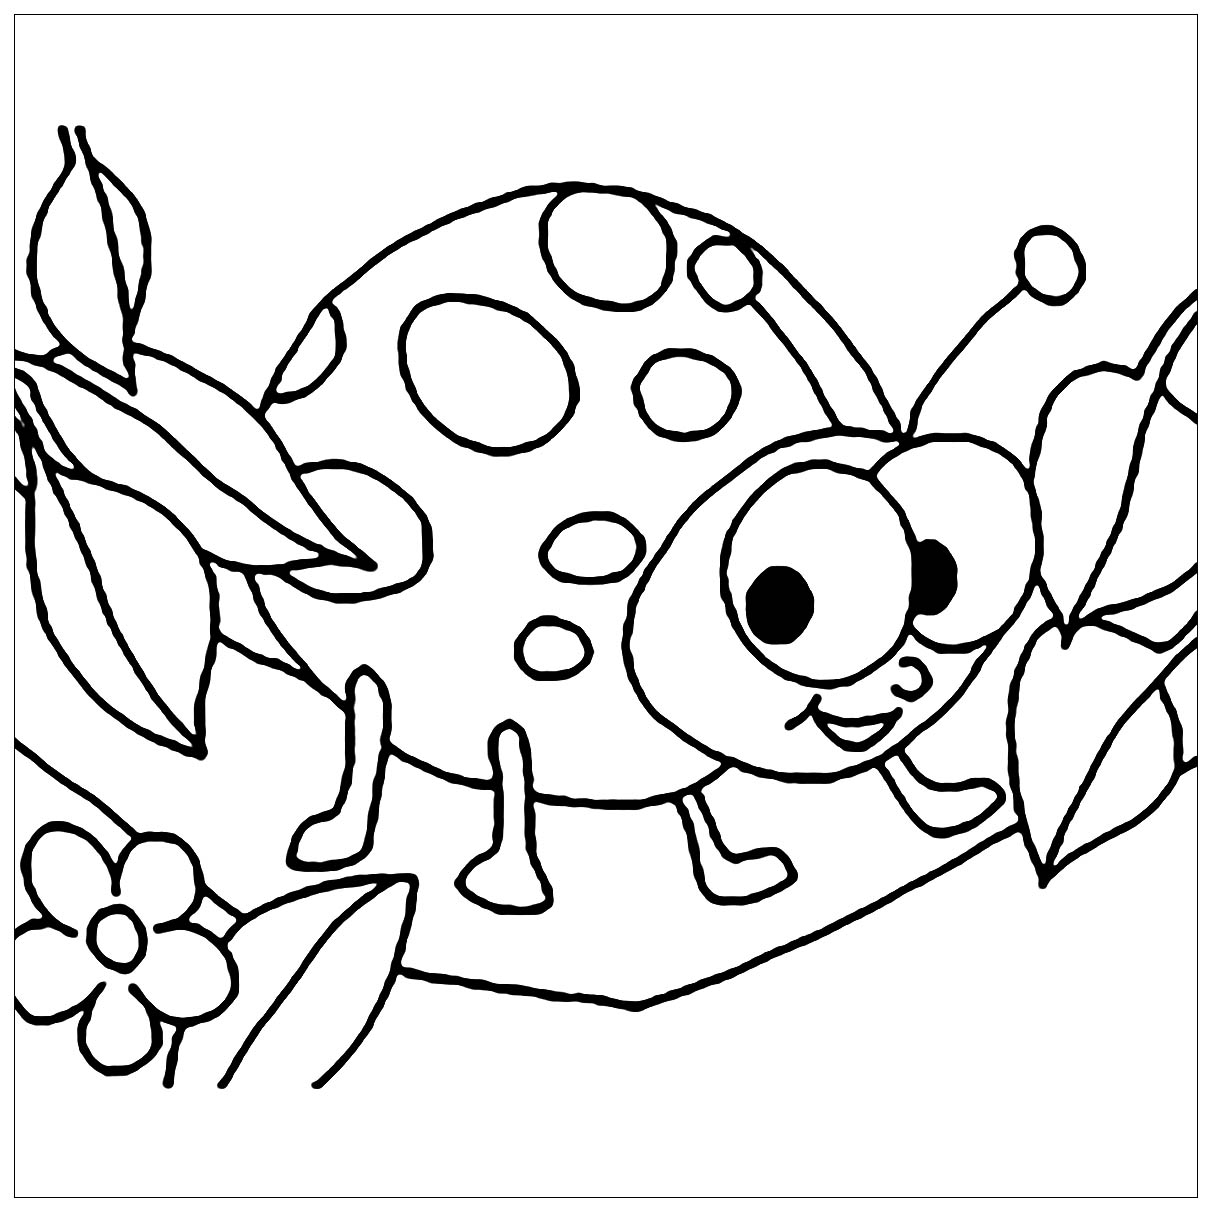 insect coloring sheets insects for kids insects kids coloring pages insect sheets coloring